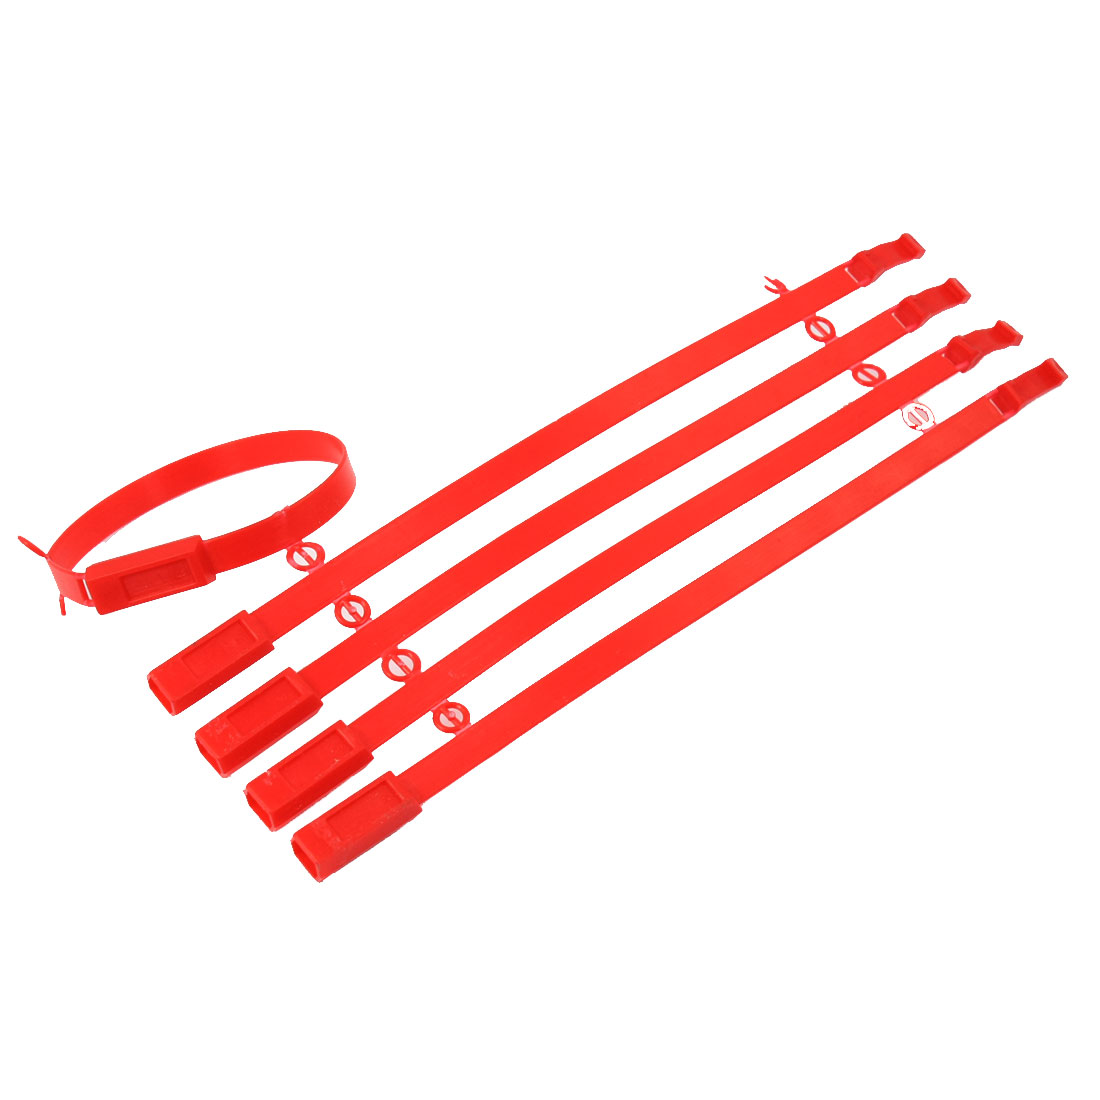 Red Plastic Locking Security Seal Strip 21cm Long 5 Pcs